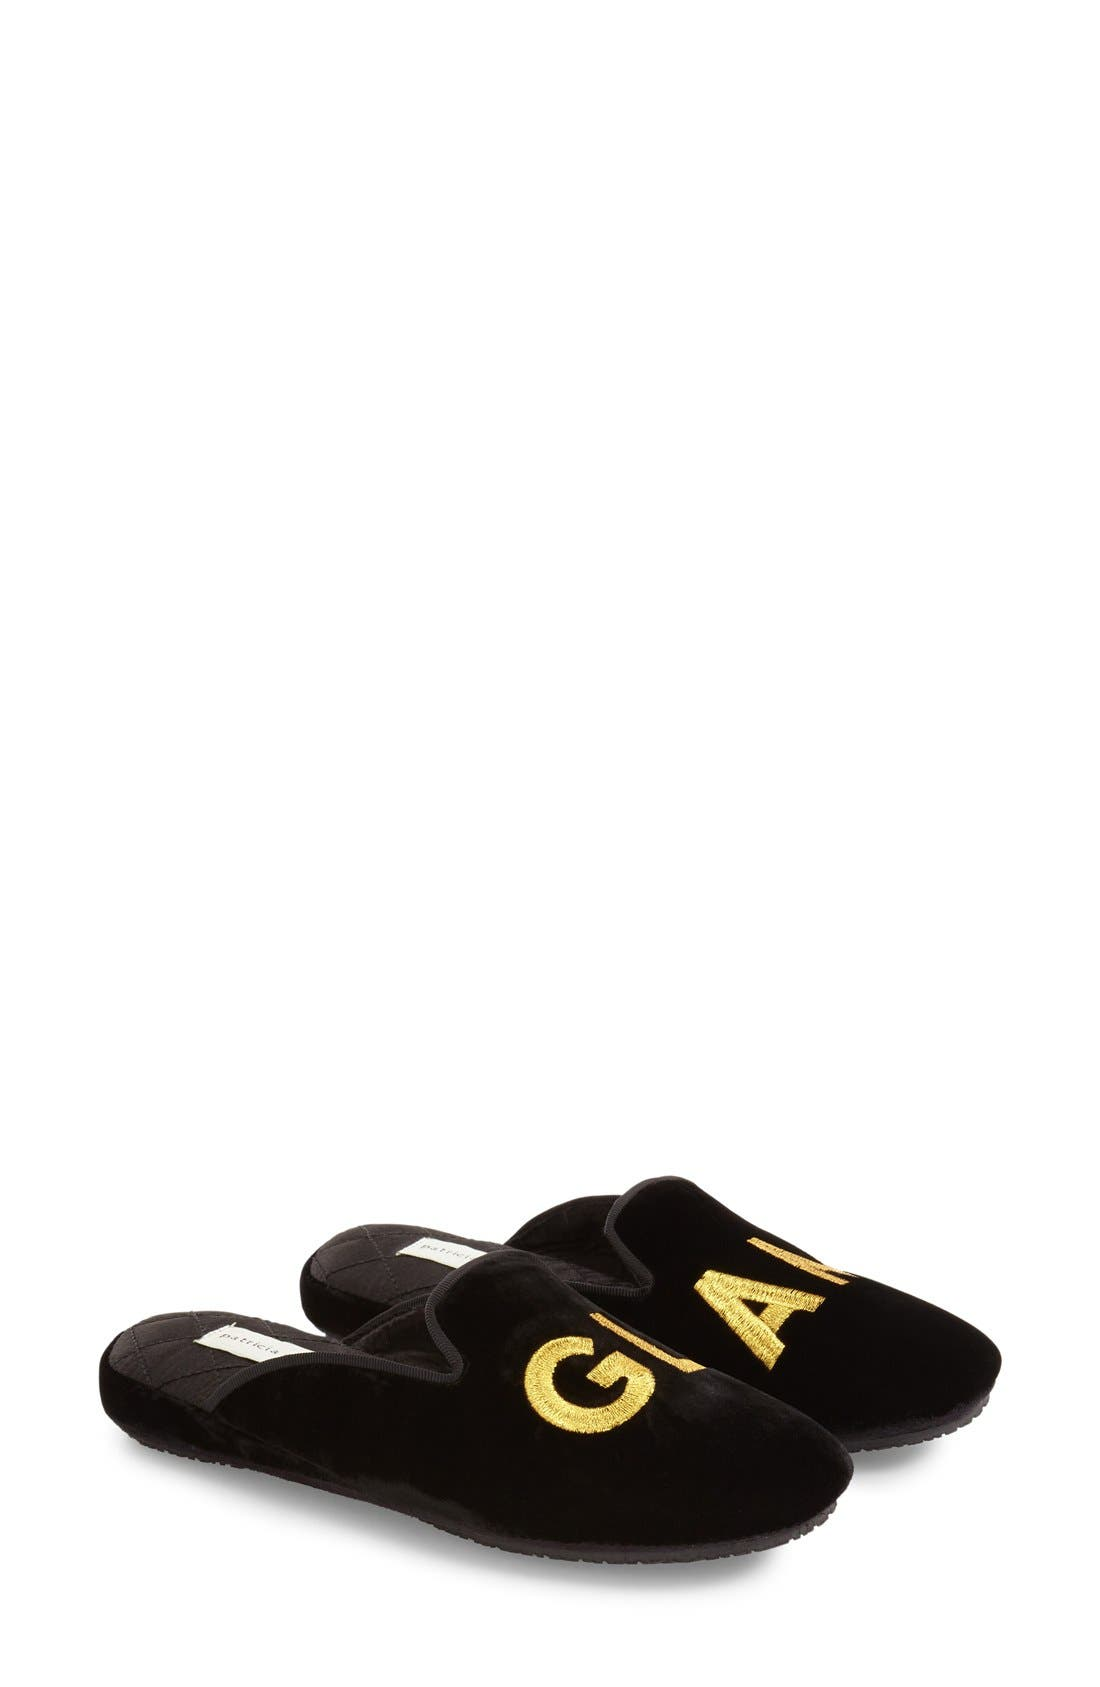 'Glam' Scuff Slipper,                             Alternate thumbnail 3, color,                             BLACK VELVET